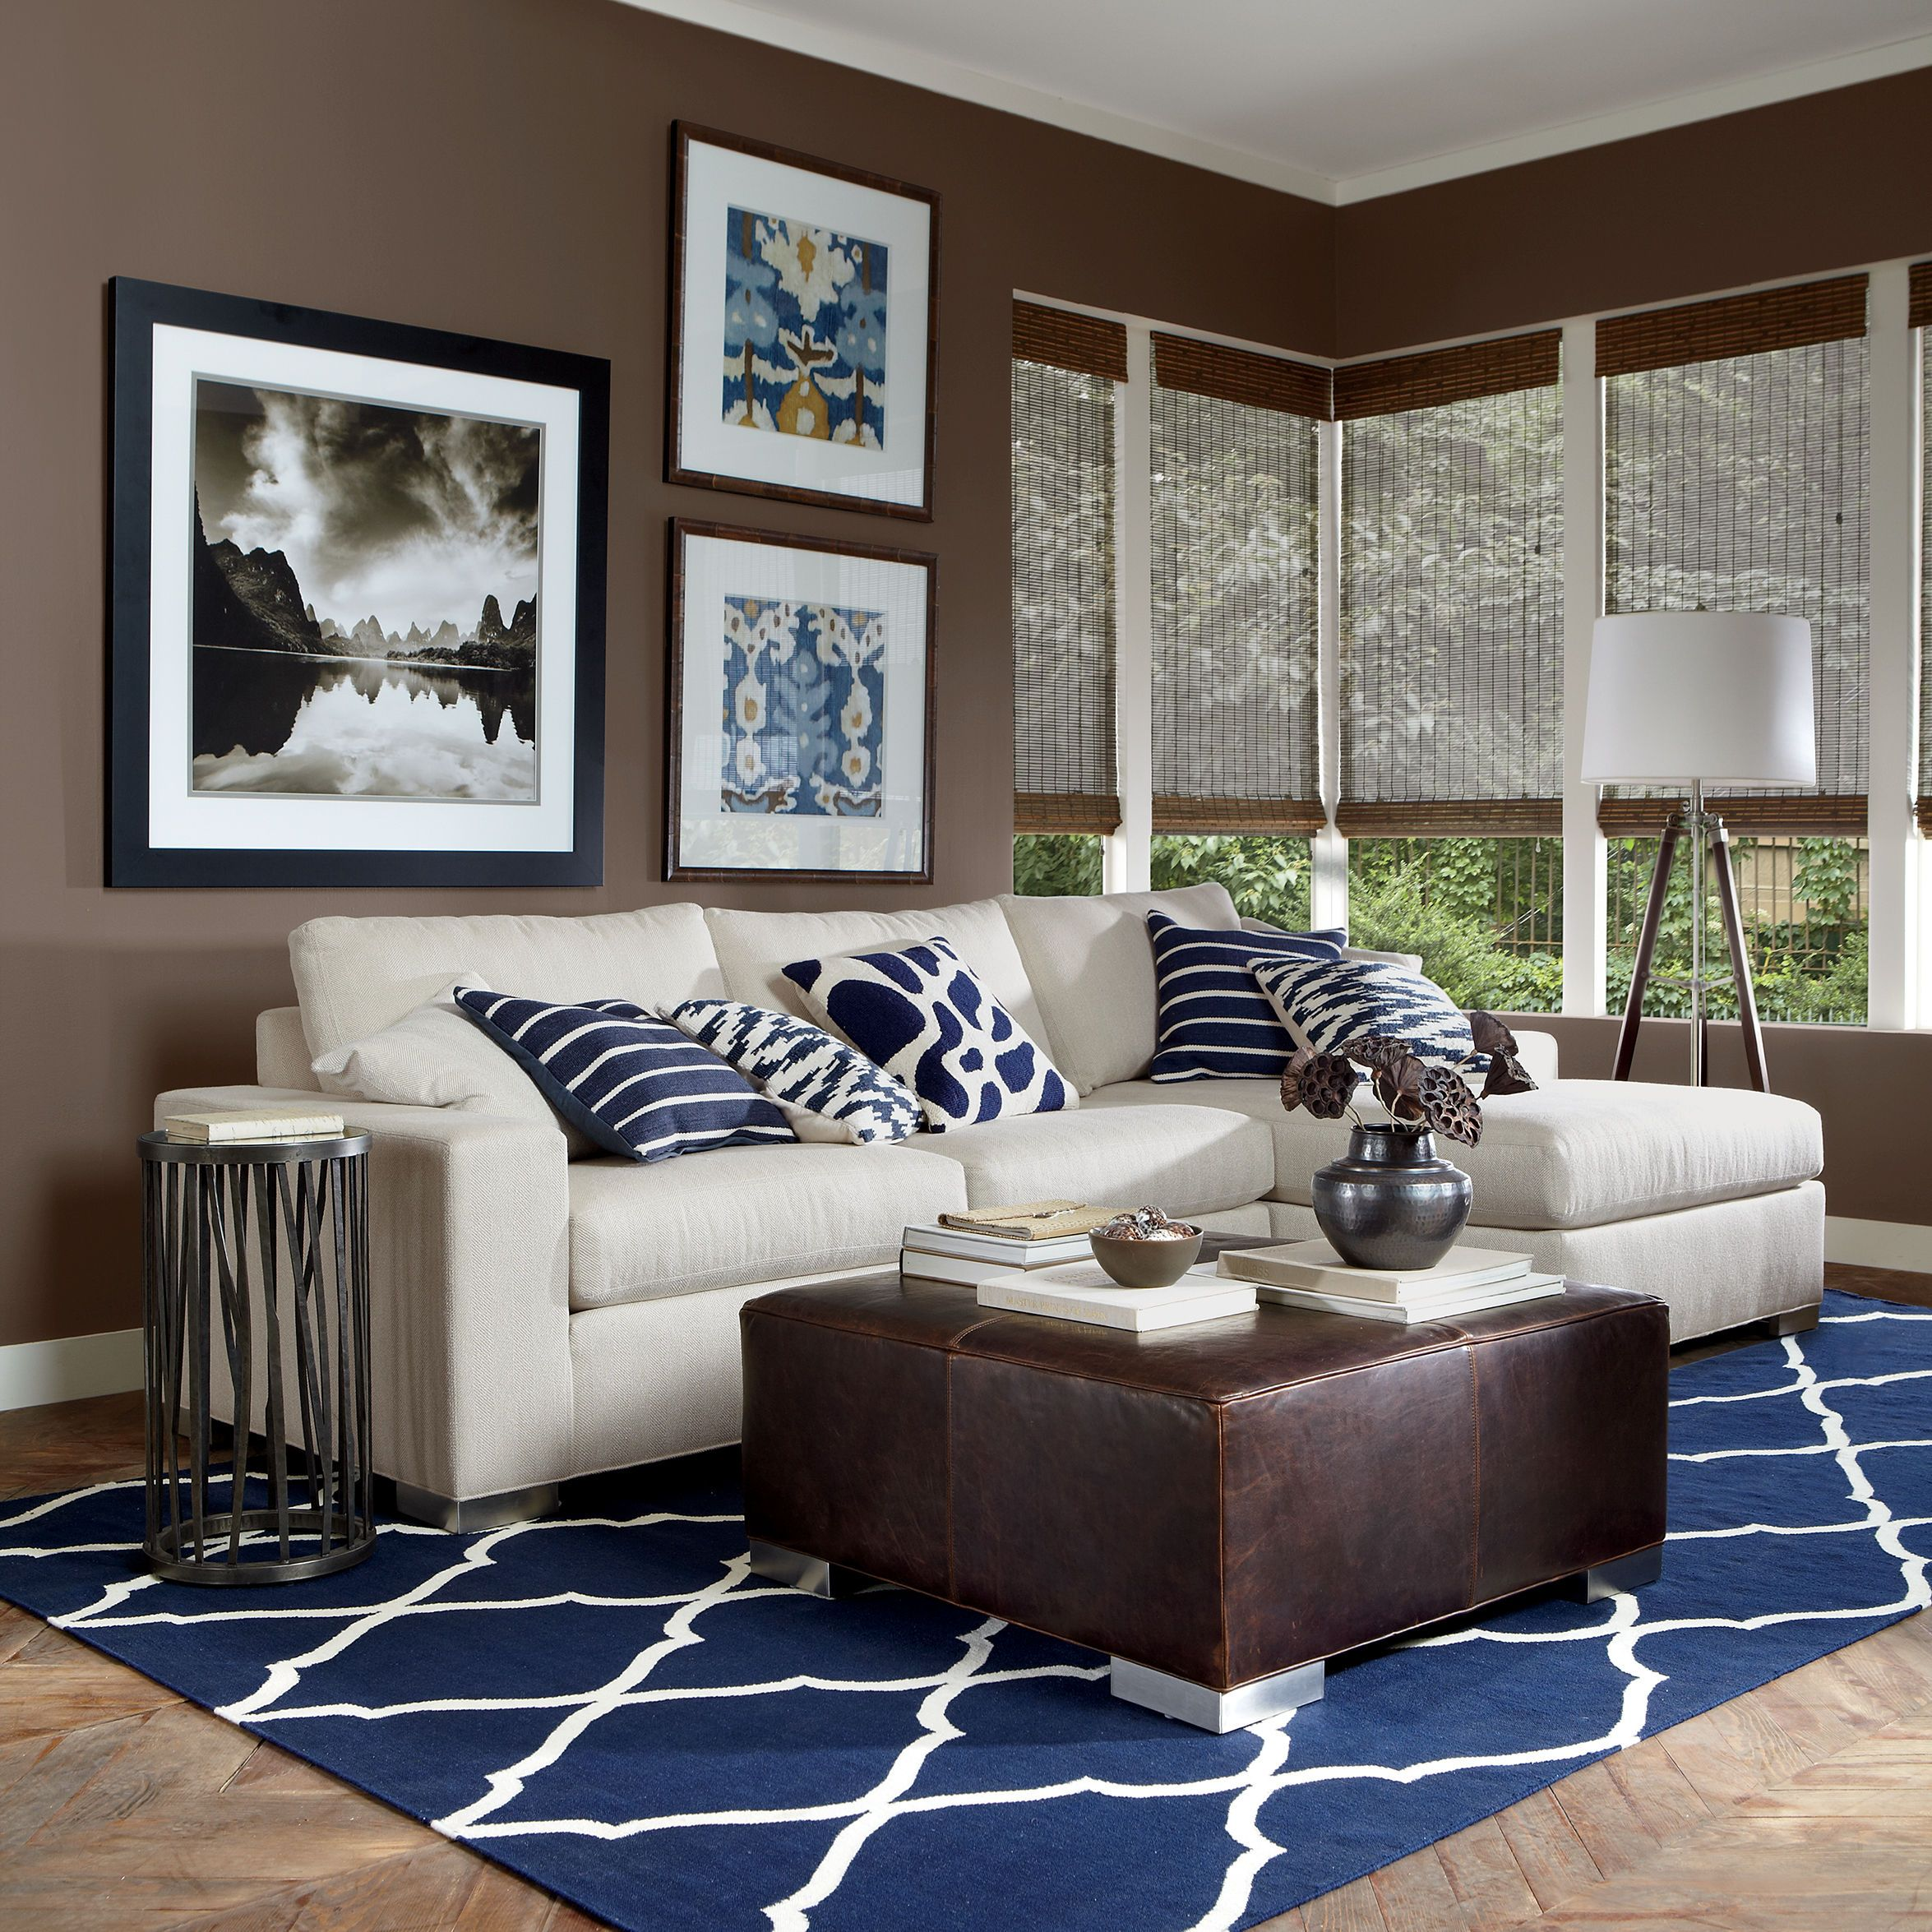 Ethan allen living room blue living rooms ethan allen for Ethan allen living room designs